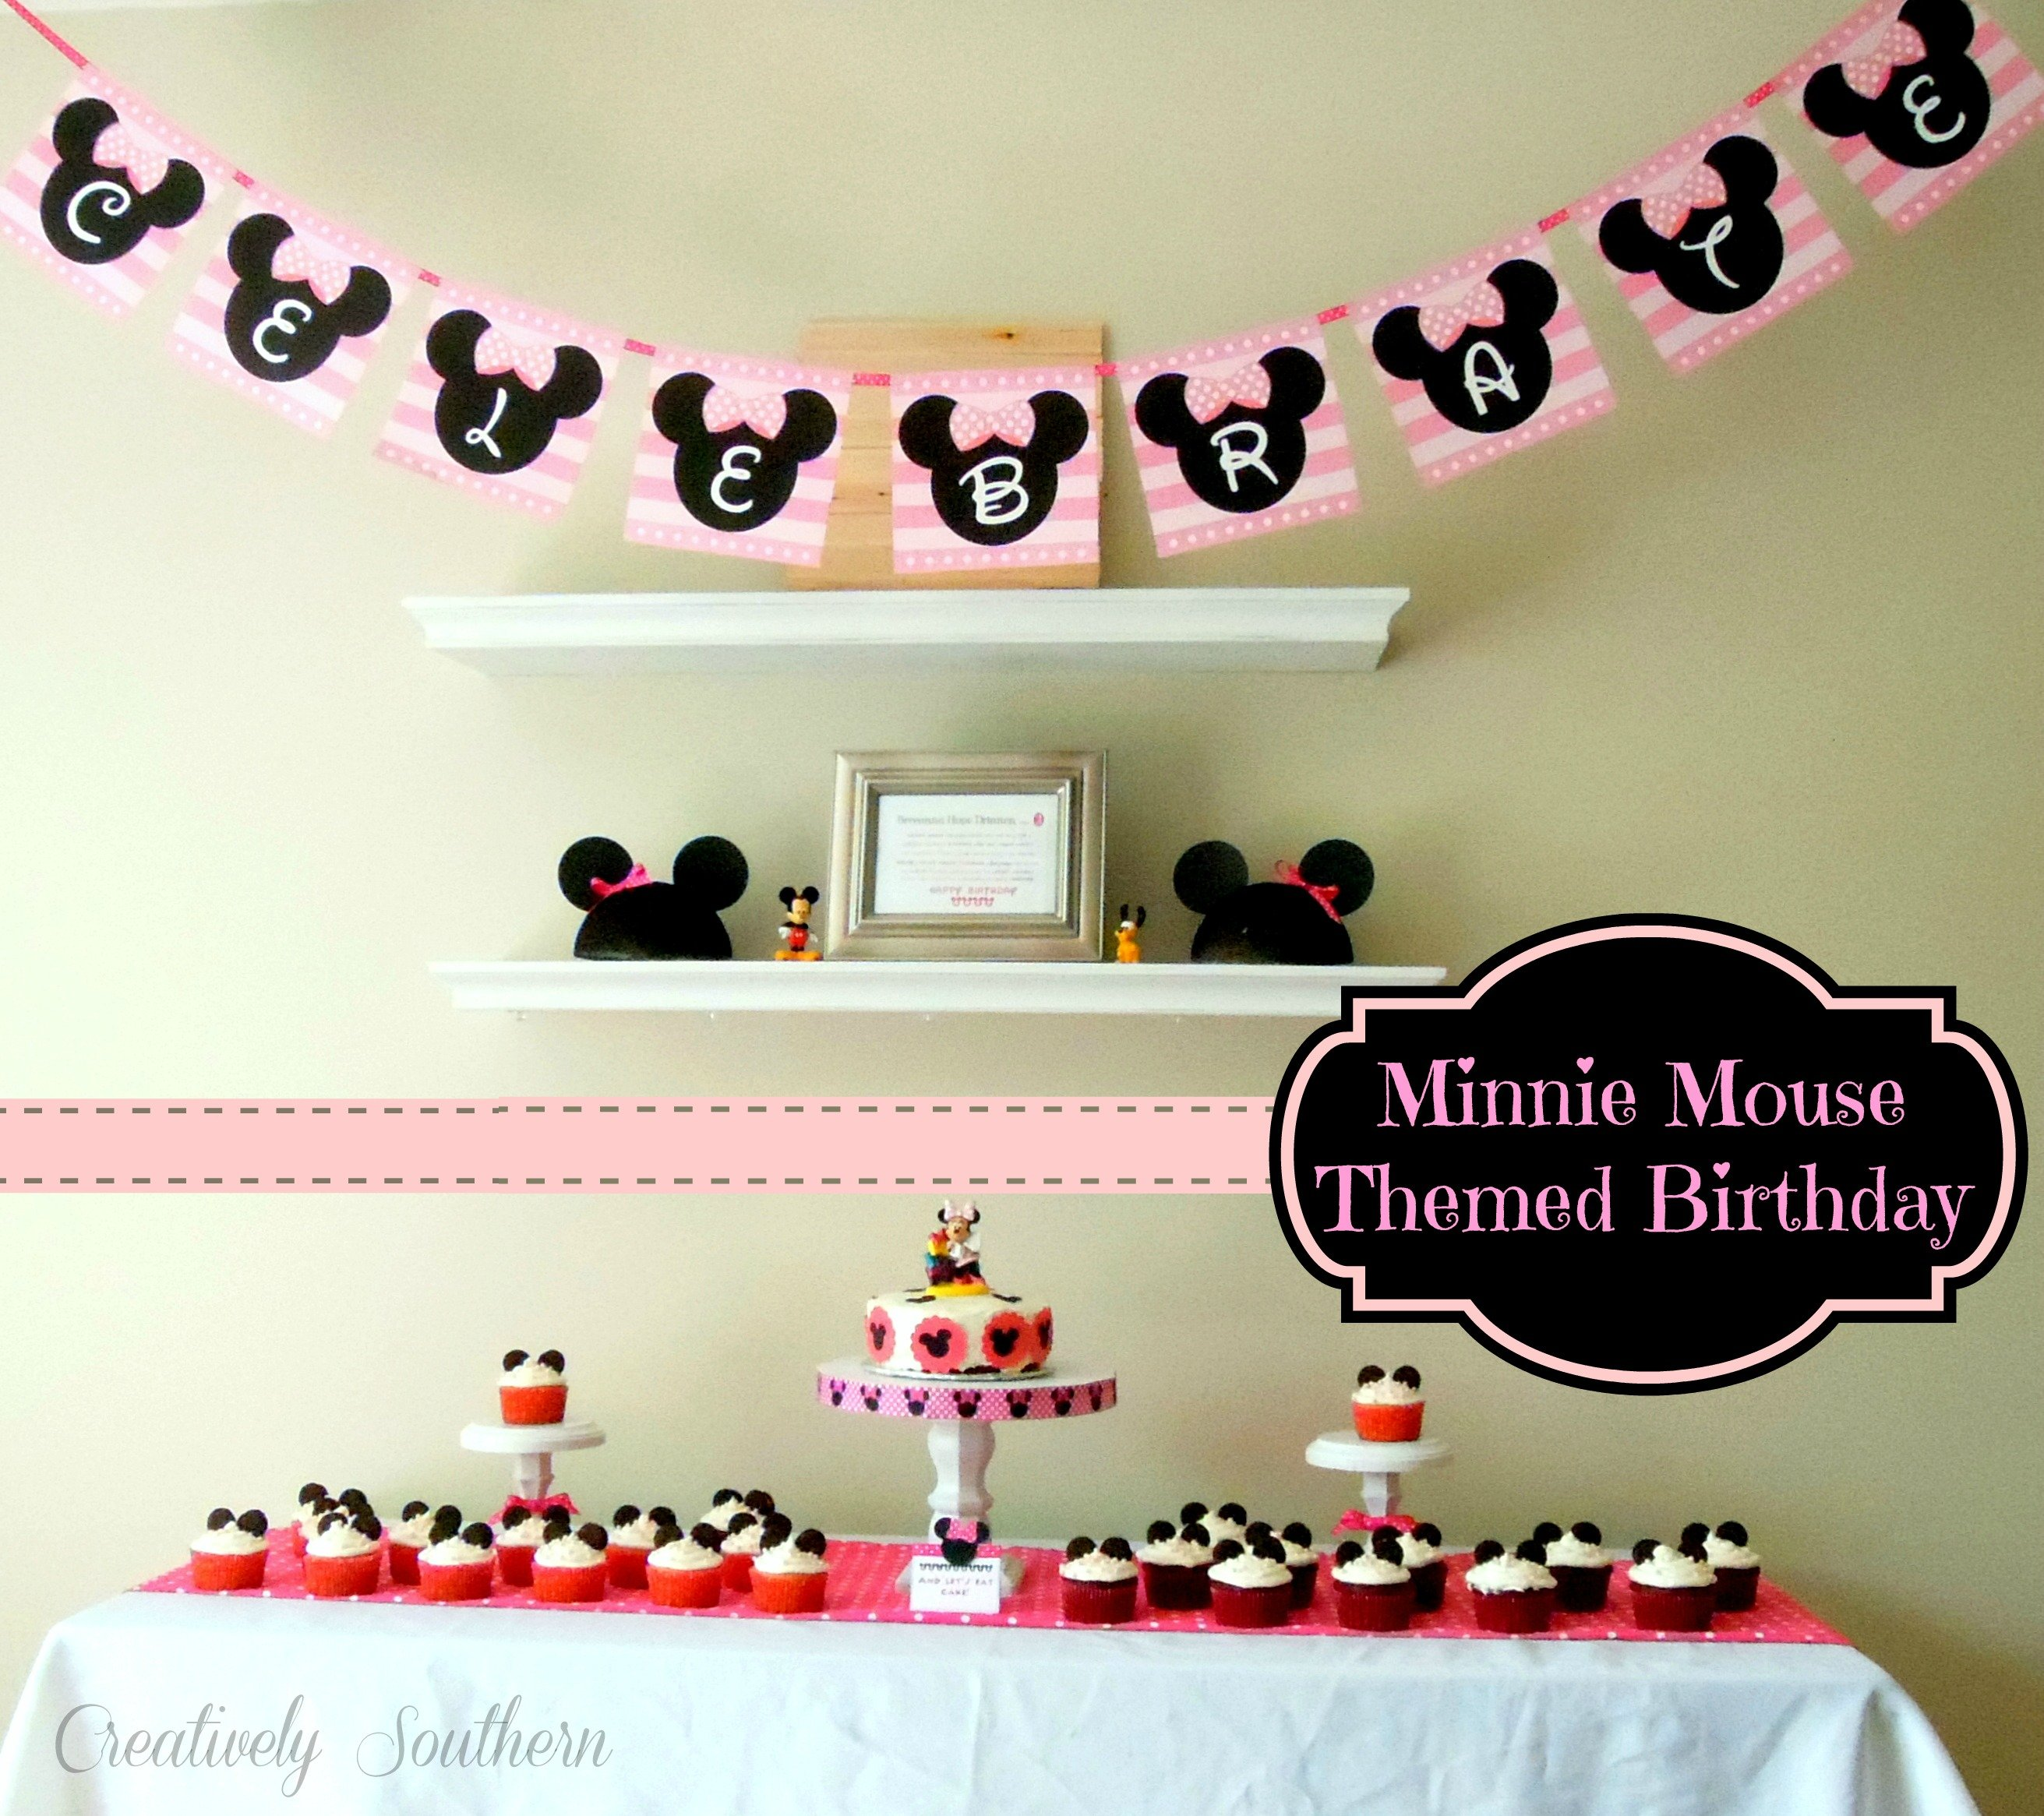 Minnie Mouse First Birthday Party Via Little Wish Parties: Minnie Mouse Themed Birthday Party